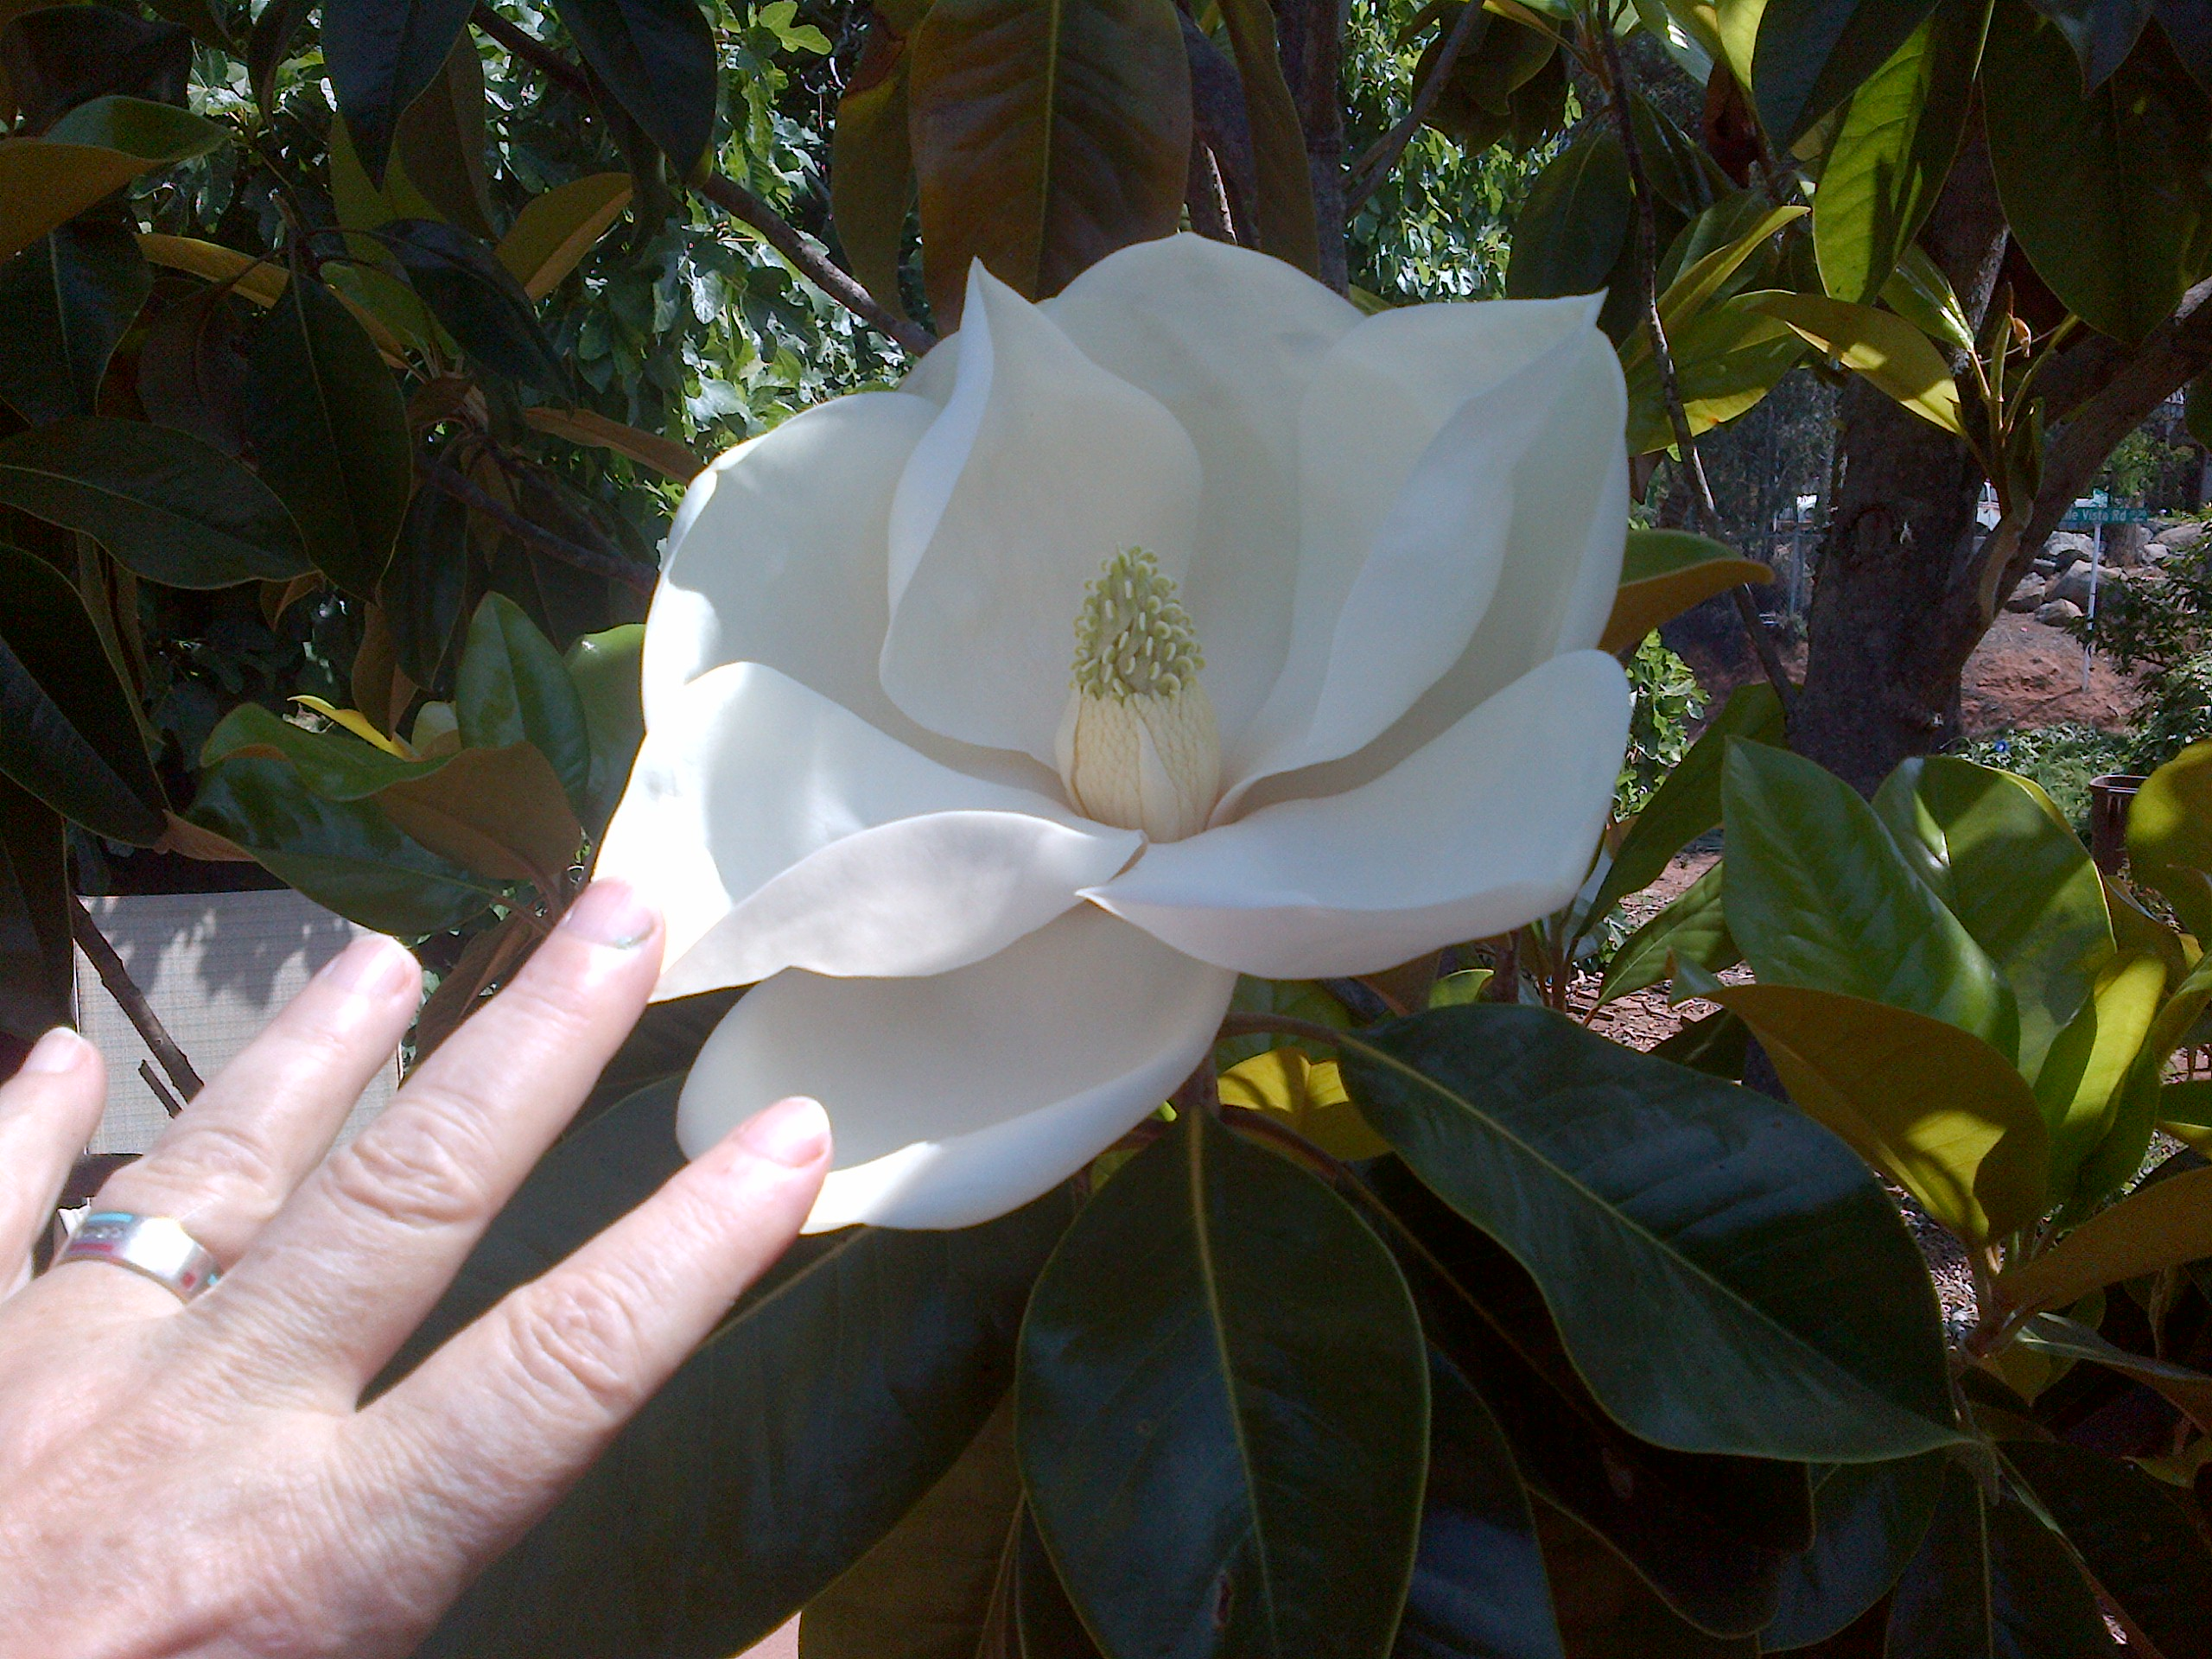 Magnolia trees love Lakeside. A Magnolia blossom in Kitty Cooper's garden  (photo Kitty Cooper)